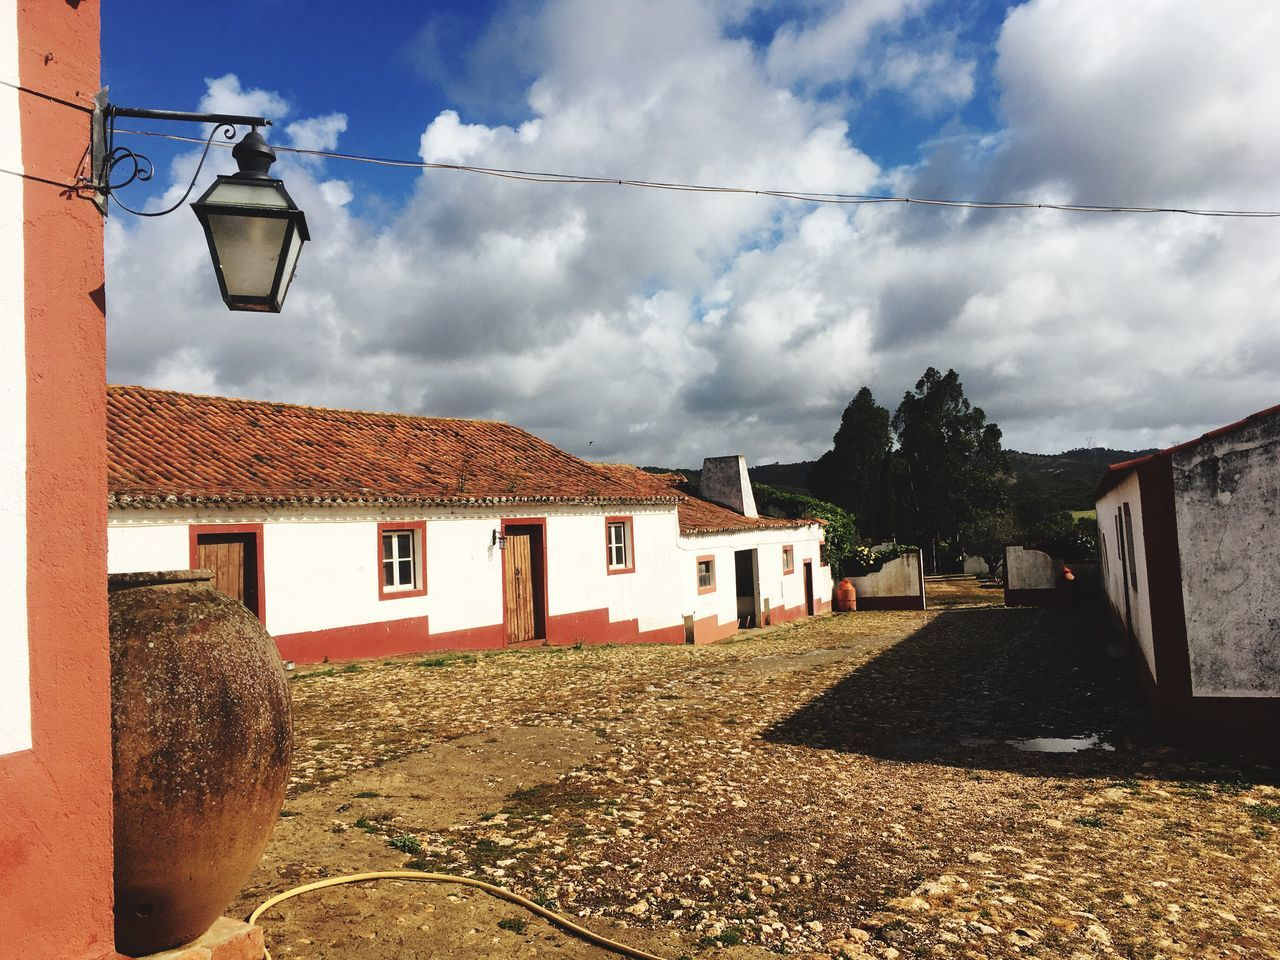 Herdade do Telheiro. Architecture Tranquility Springtime Beauty In Nature Relaxing Moments Odemira Alentejo,Portugal